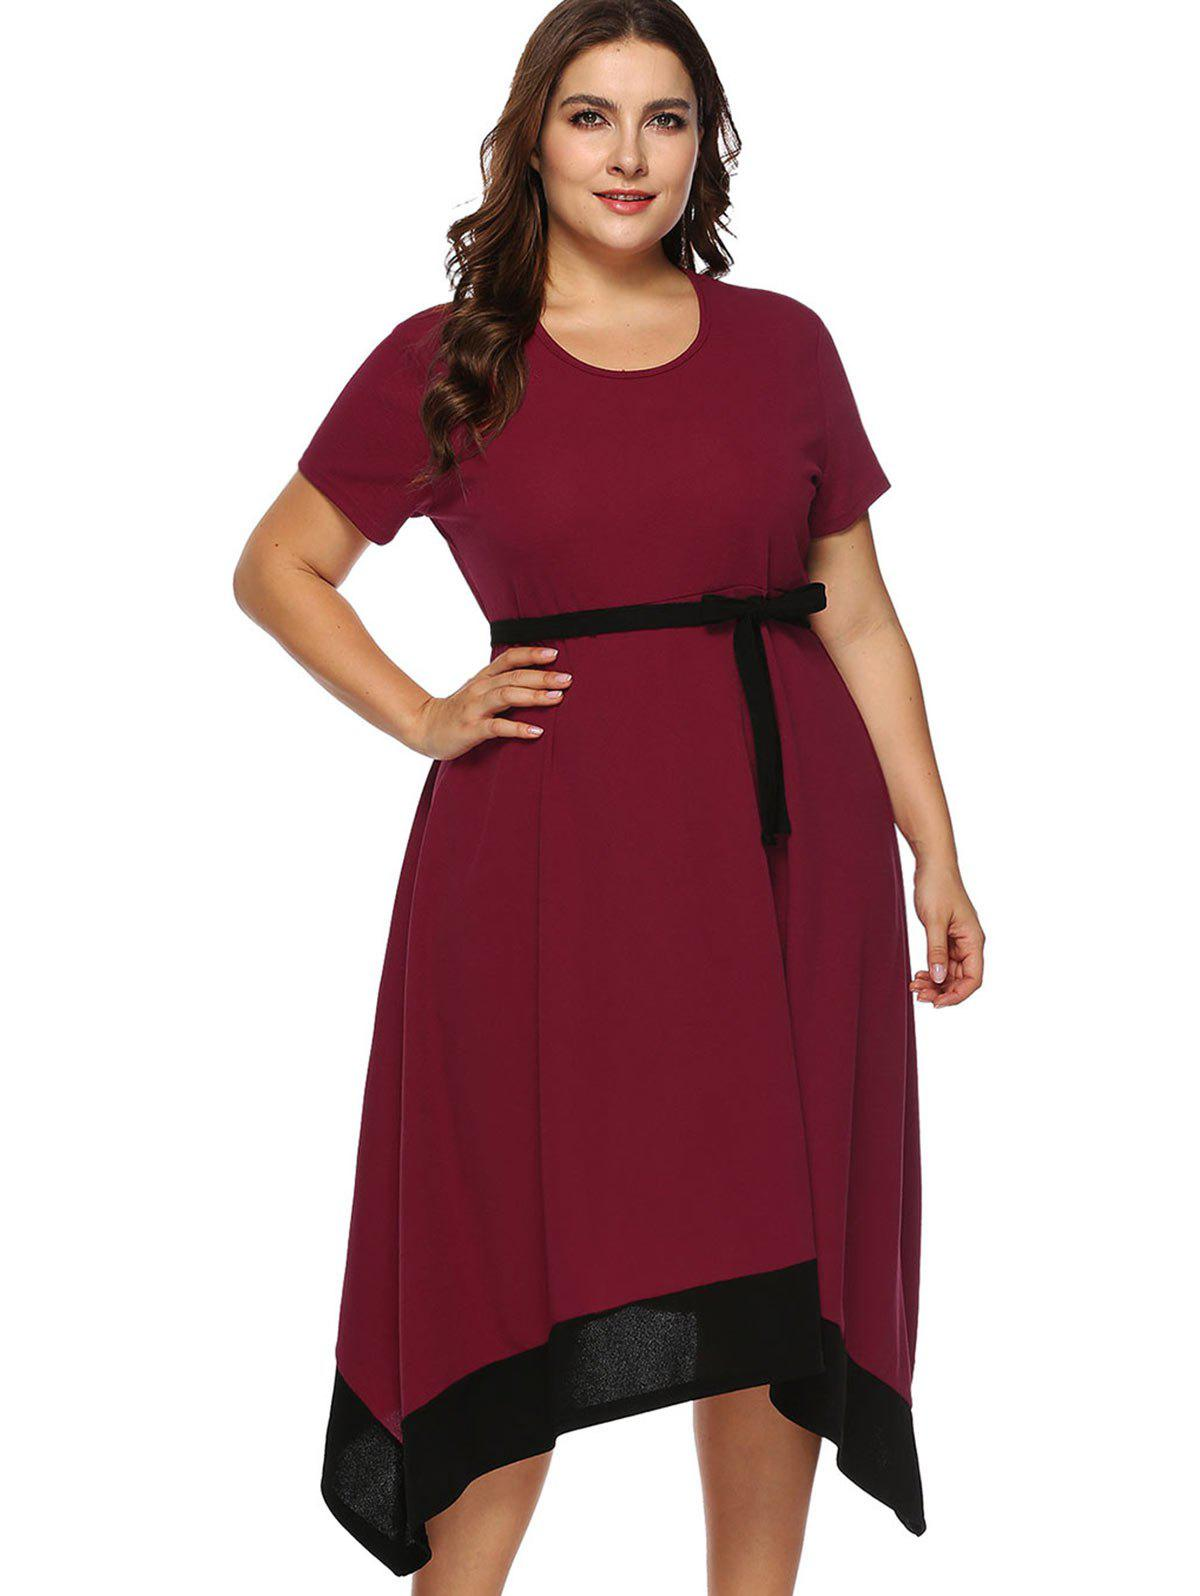 Store Belted Plus Size Contrast Trim Asymmetrical Dress